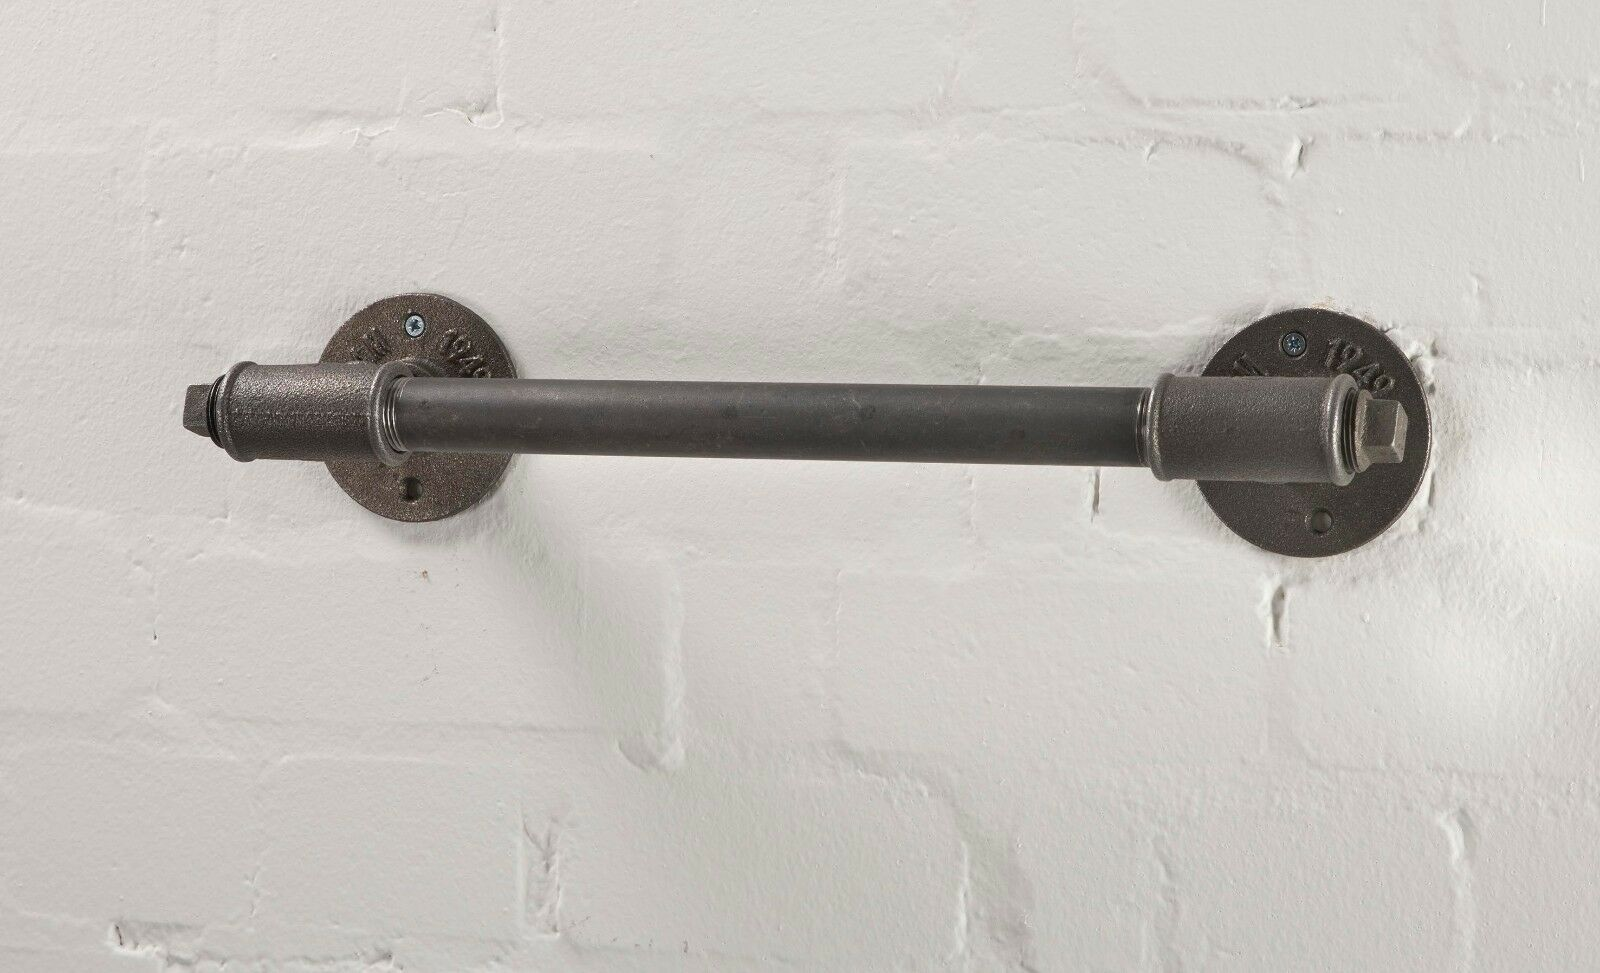 Industrial Vintage Towel Rail Made From Pipe Fittings - Tee Nut Style